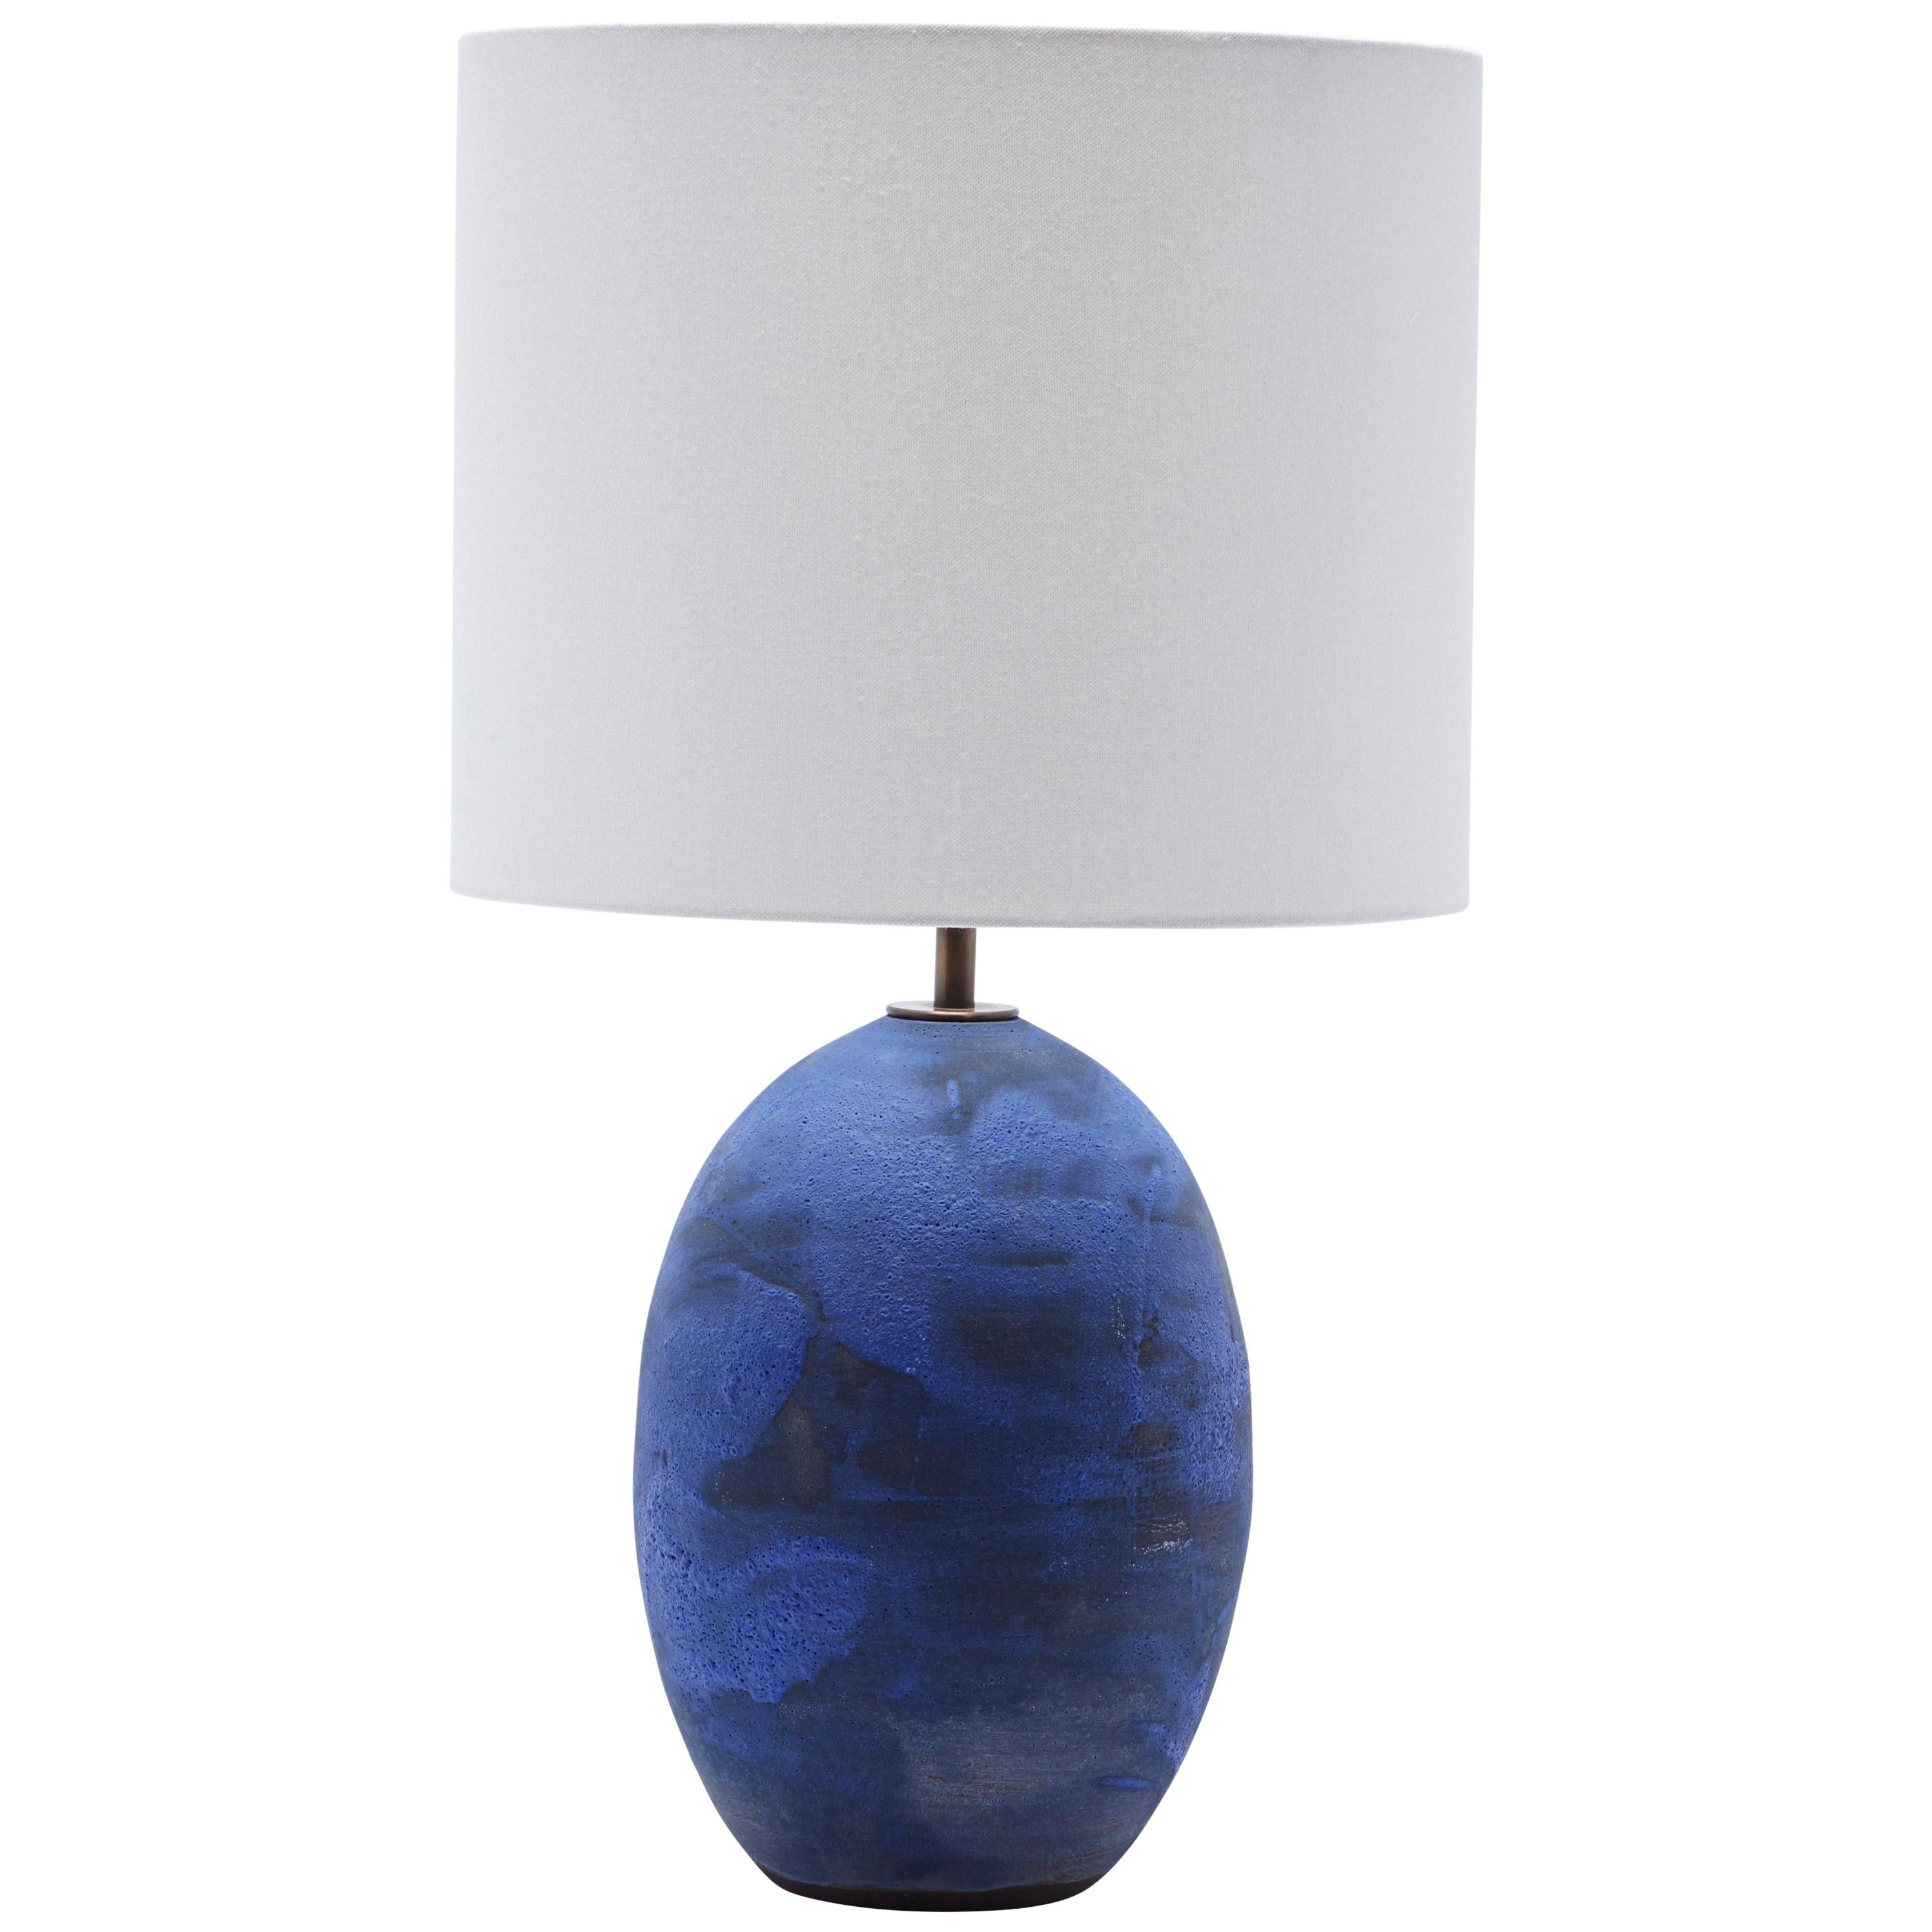 Blue Black Oval Lamp by Victoria Morris for Lawson-Fenning